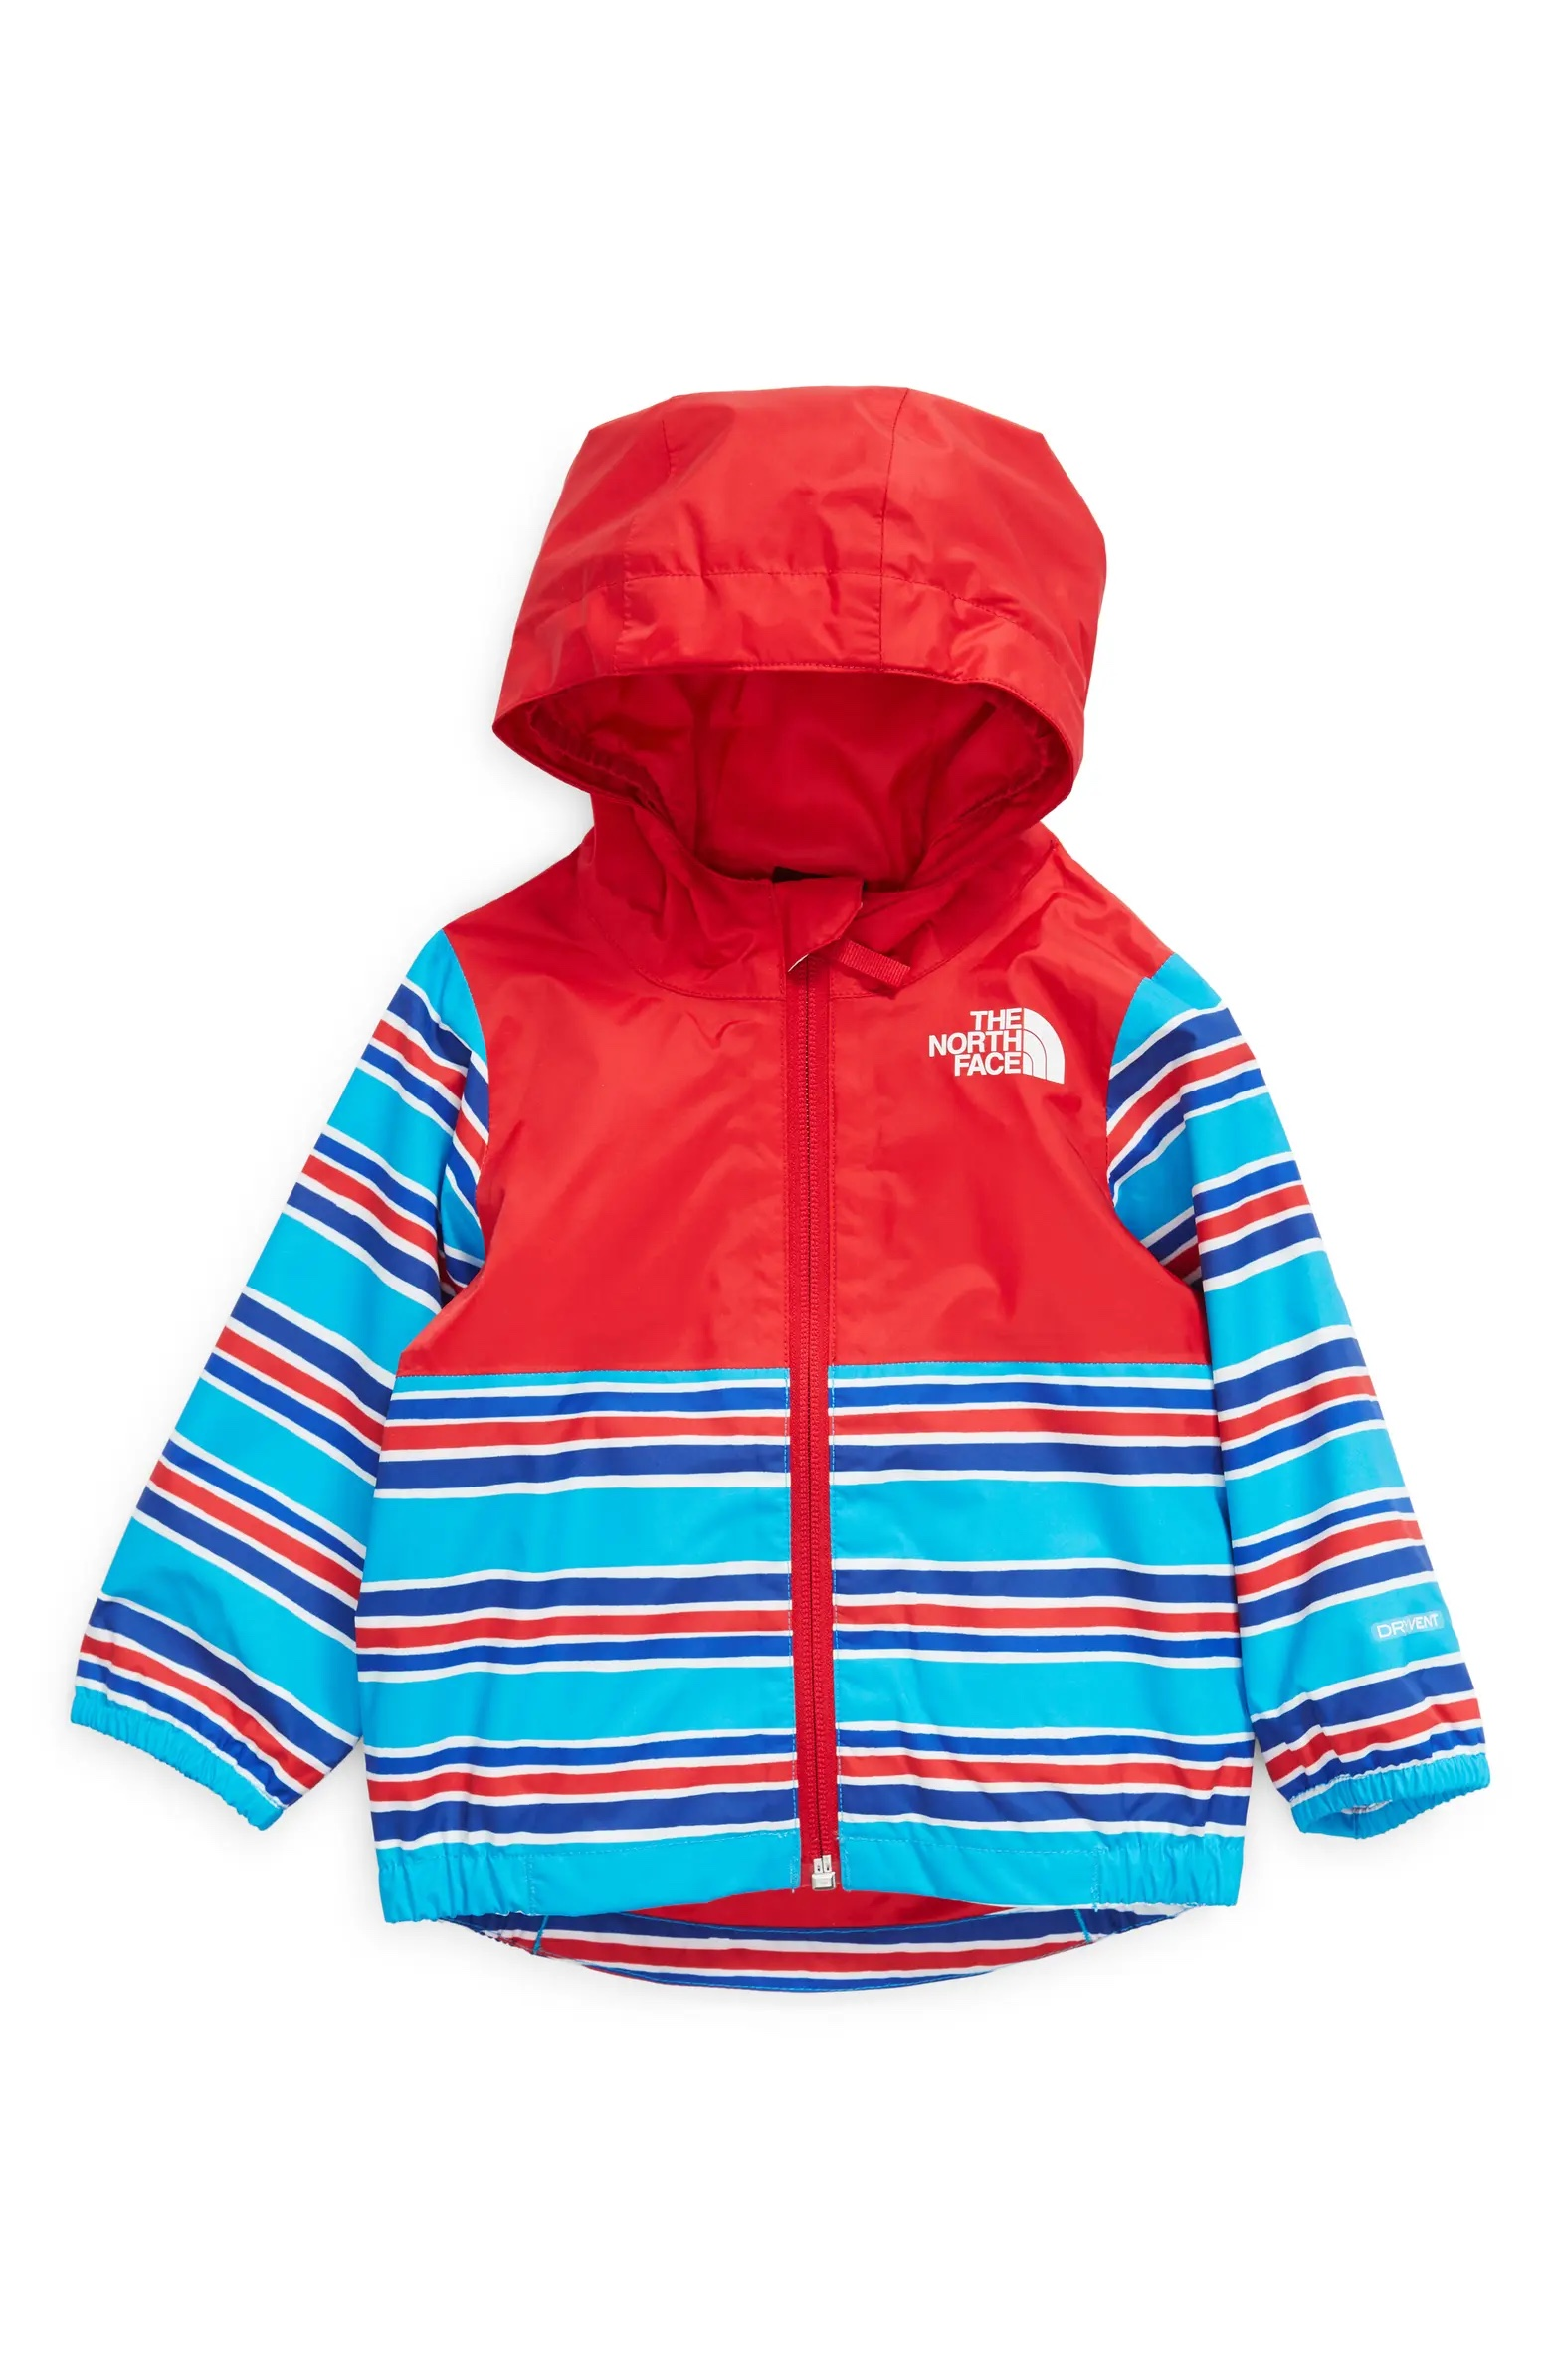 North Face striped jacket.